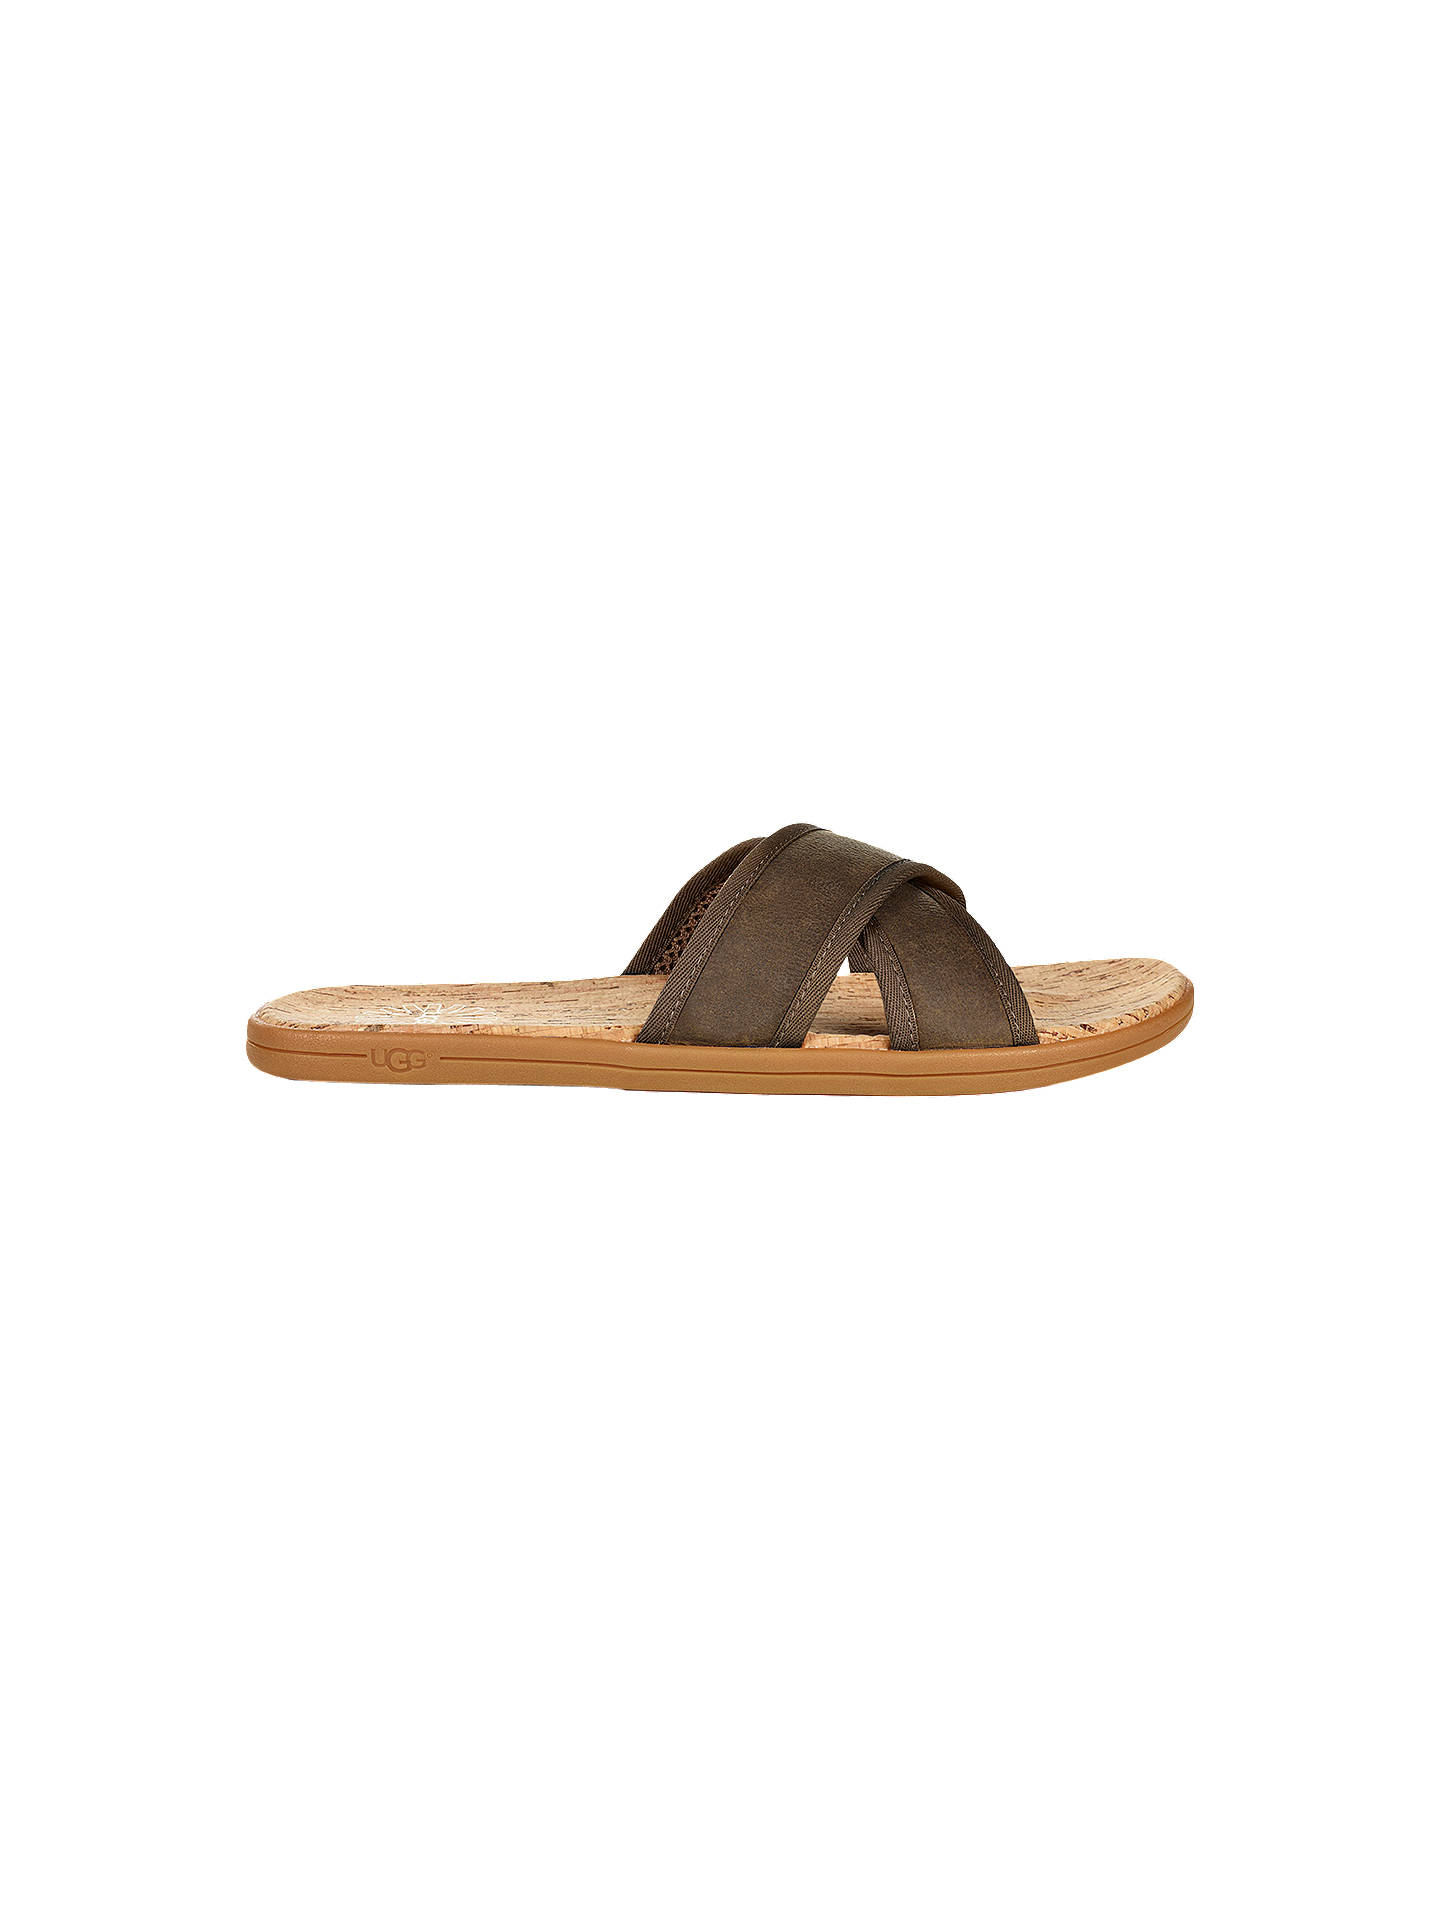 e8b6e2d0edeb29 Buy UGG Seaside Slide Sandals, Antelope, 7 Online at johnlewis.com